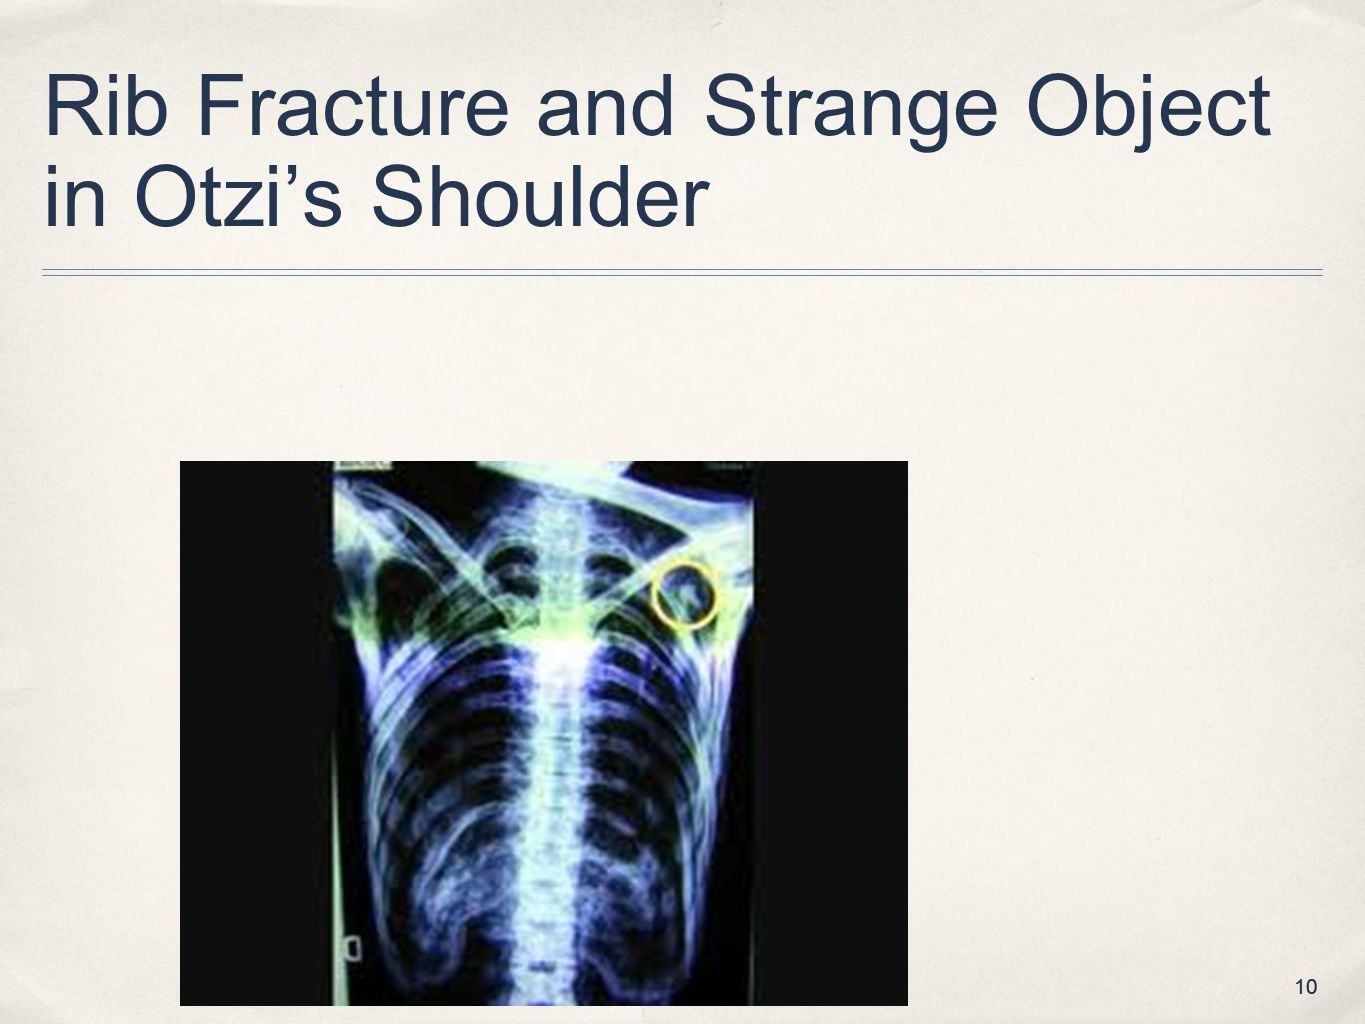 Rib Fracture and Strange Object in Otzi's Shoulder